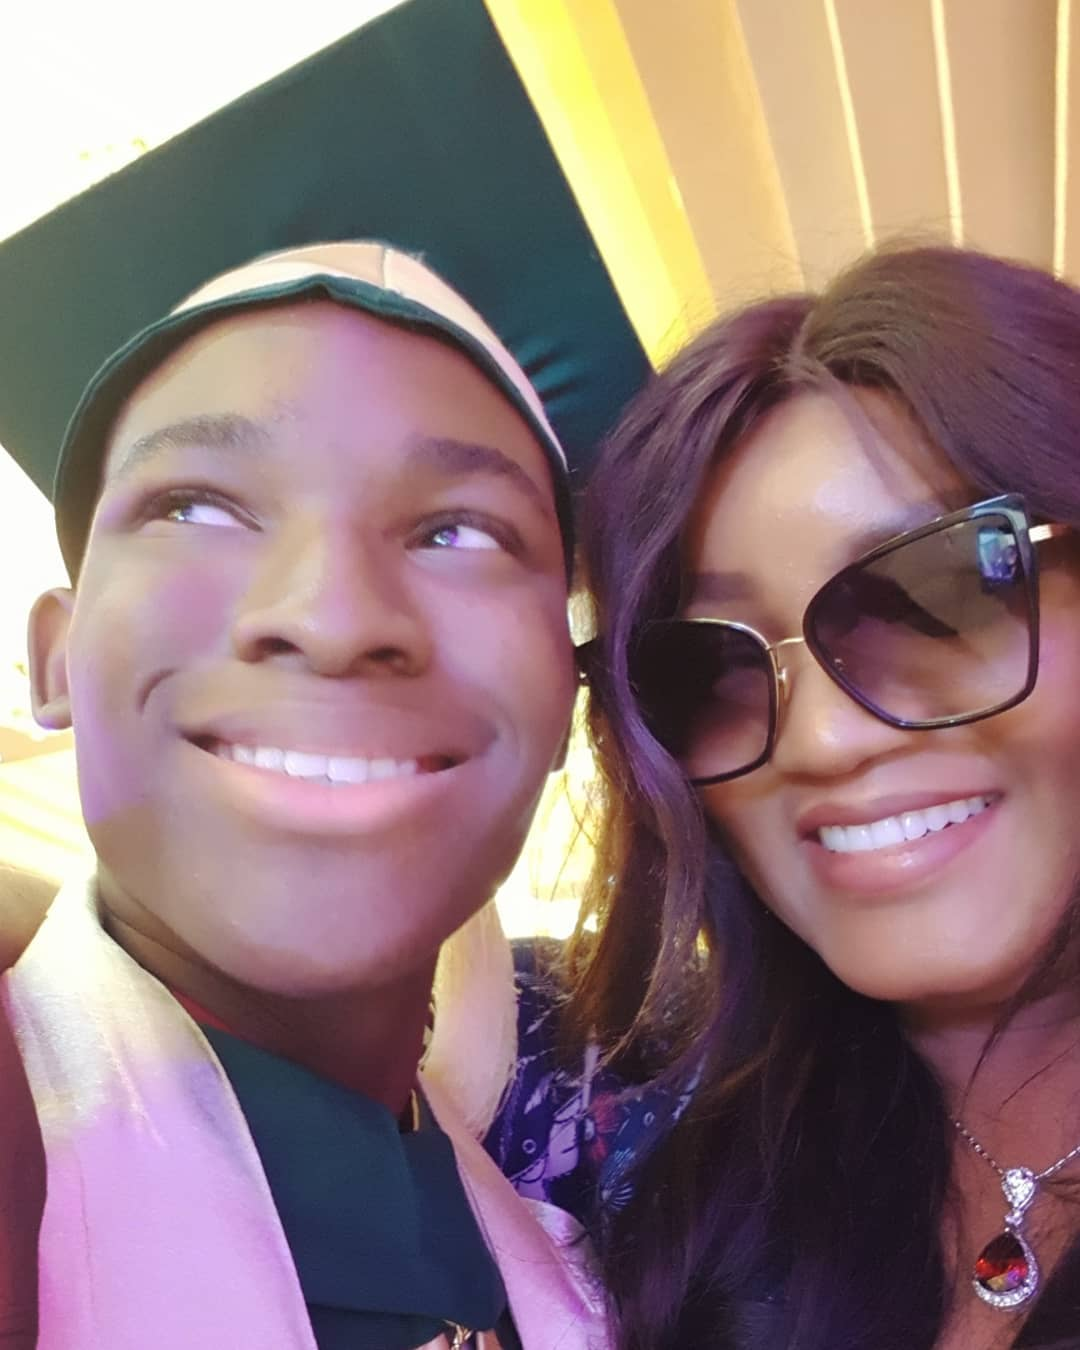 36482439 232125420731588 3676275878326697984 n - PHOTOS: Omotola's Son, Michael Graduates From Secondary School